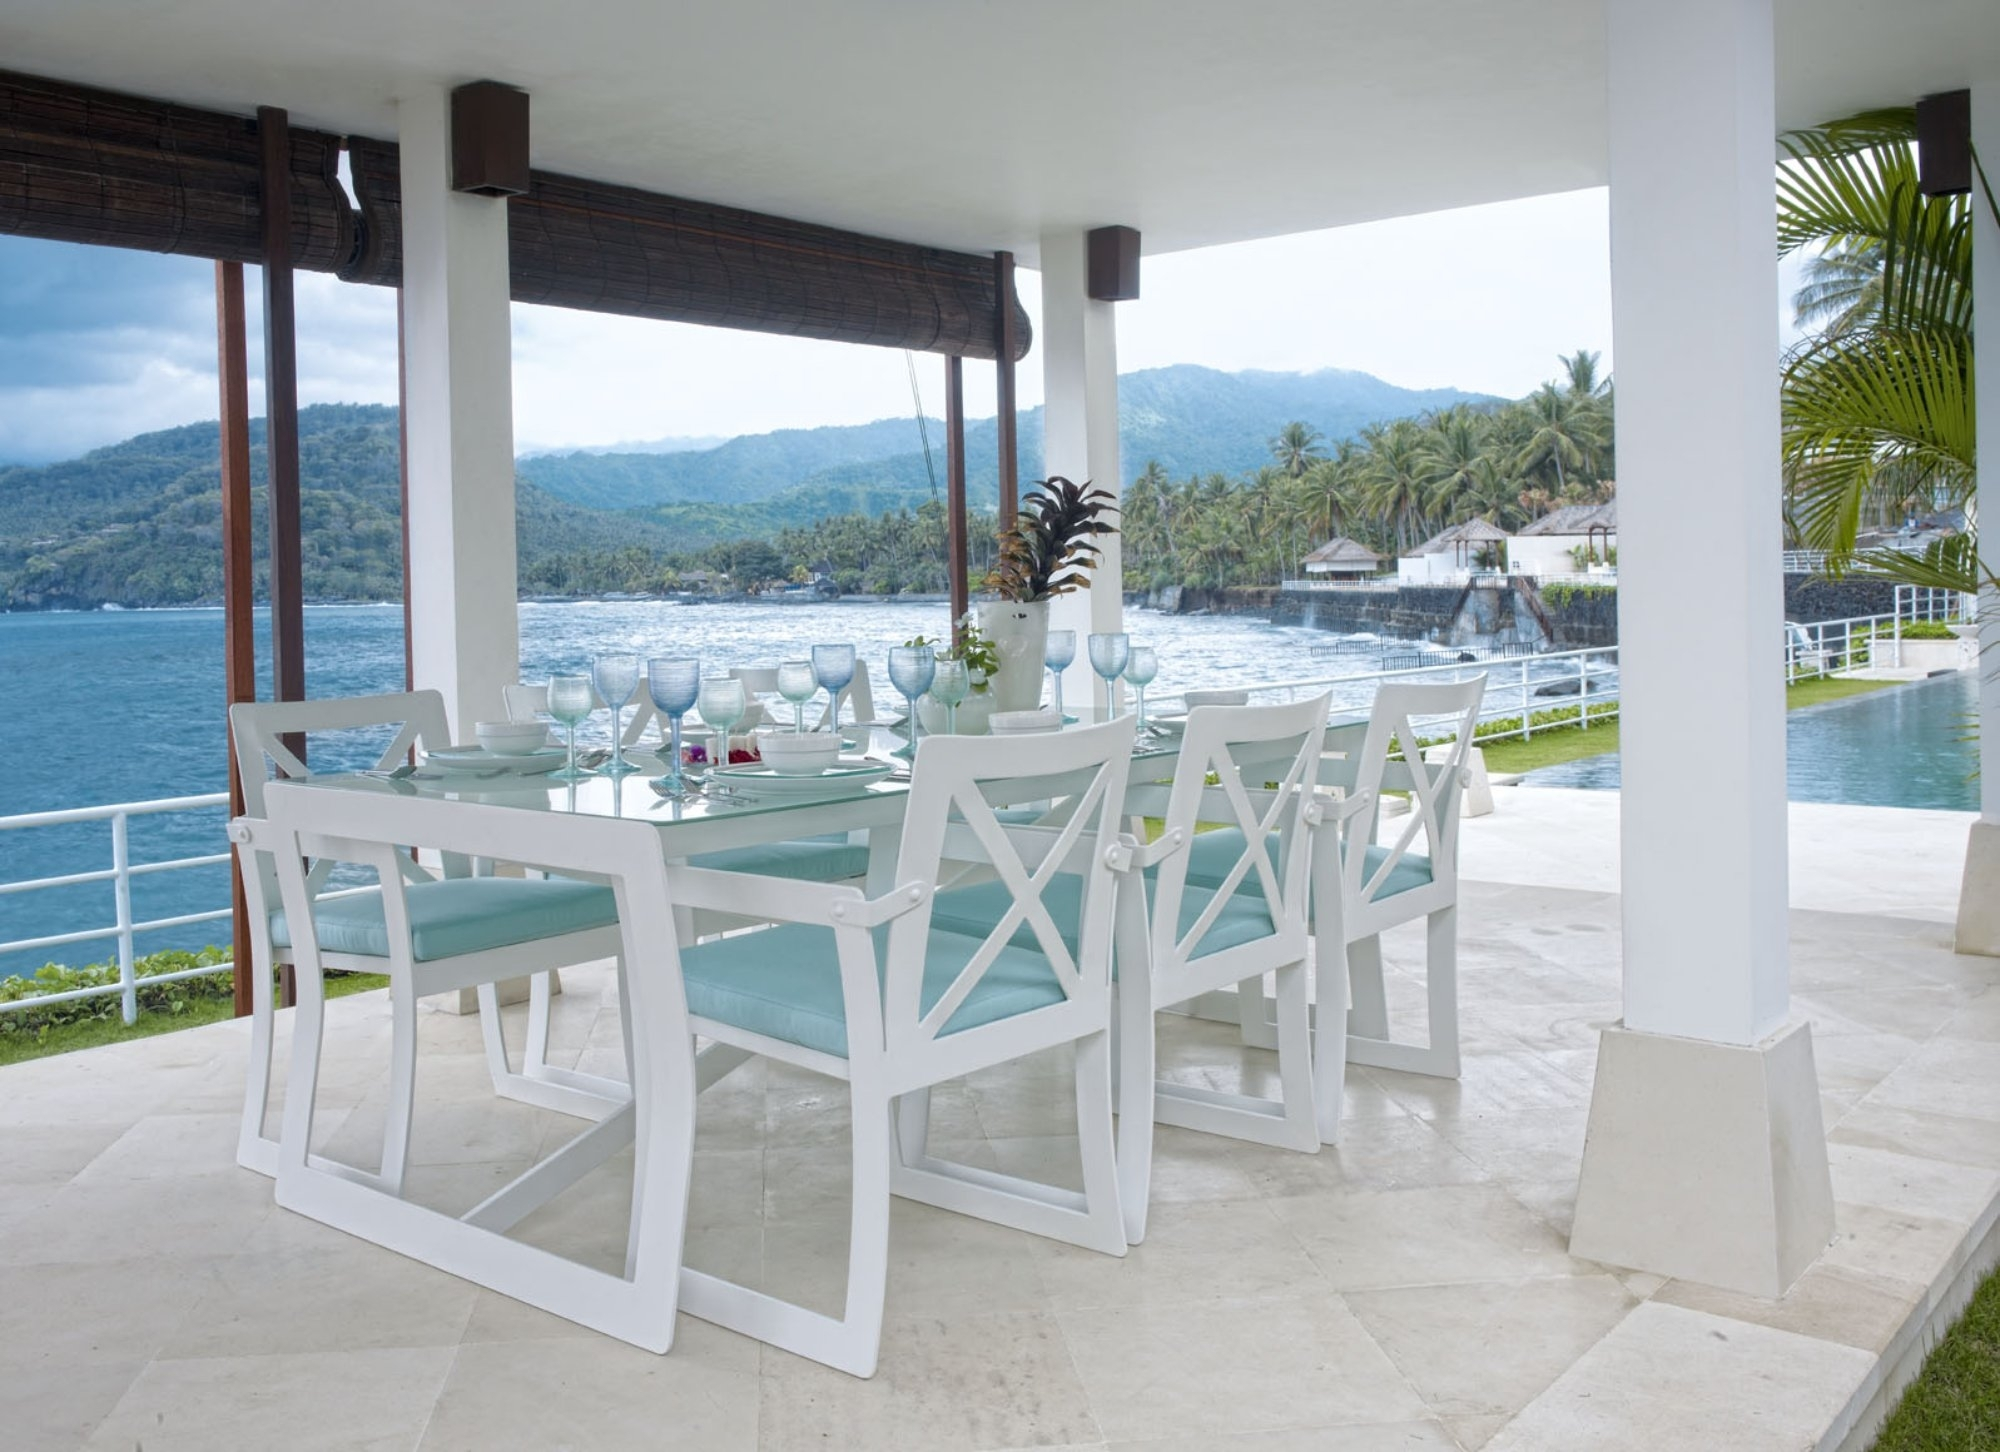 5 Chair With Table Outdoor Hospitality Furniture